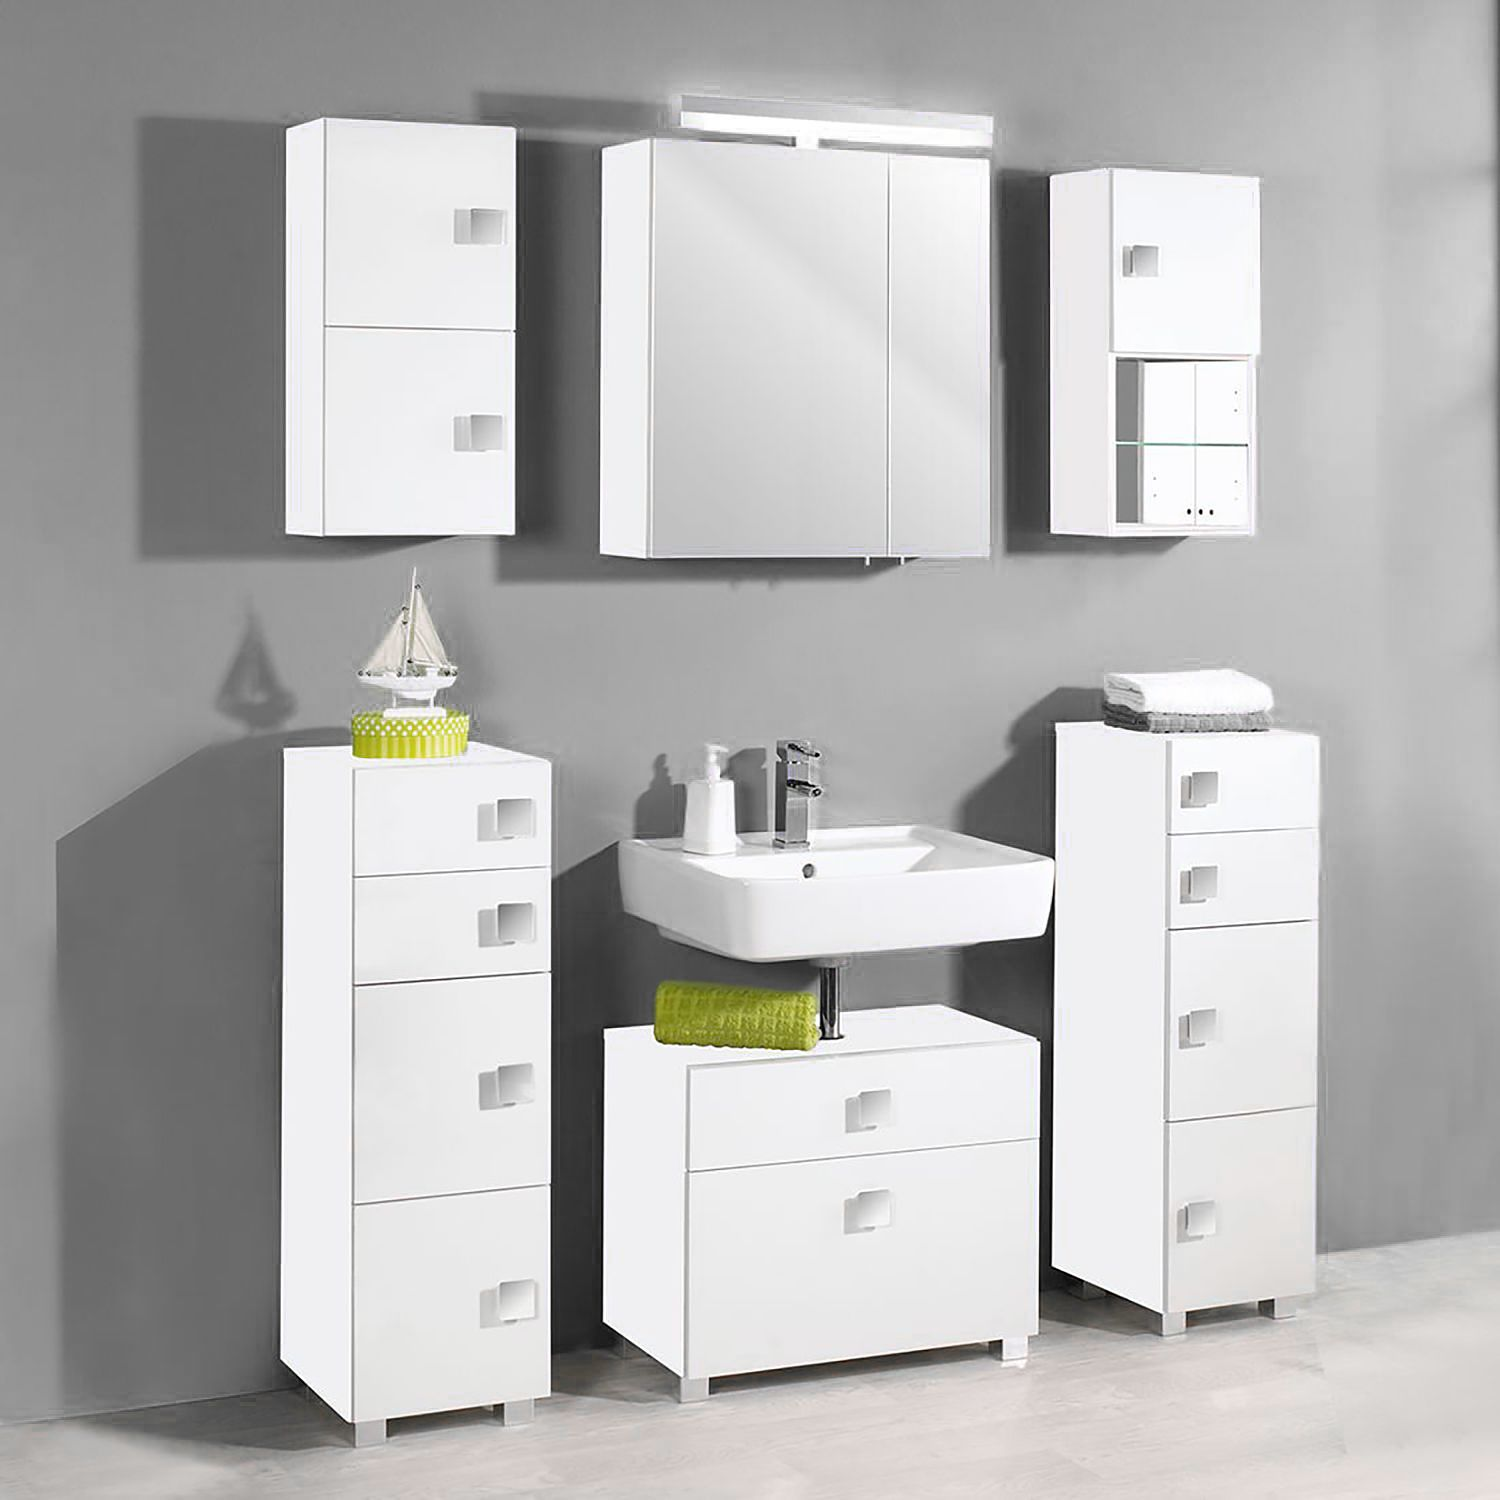 Armoire basse Genf